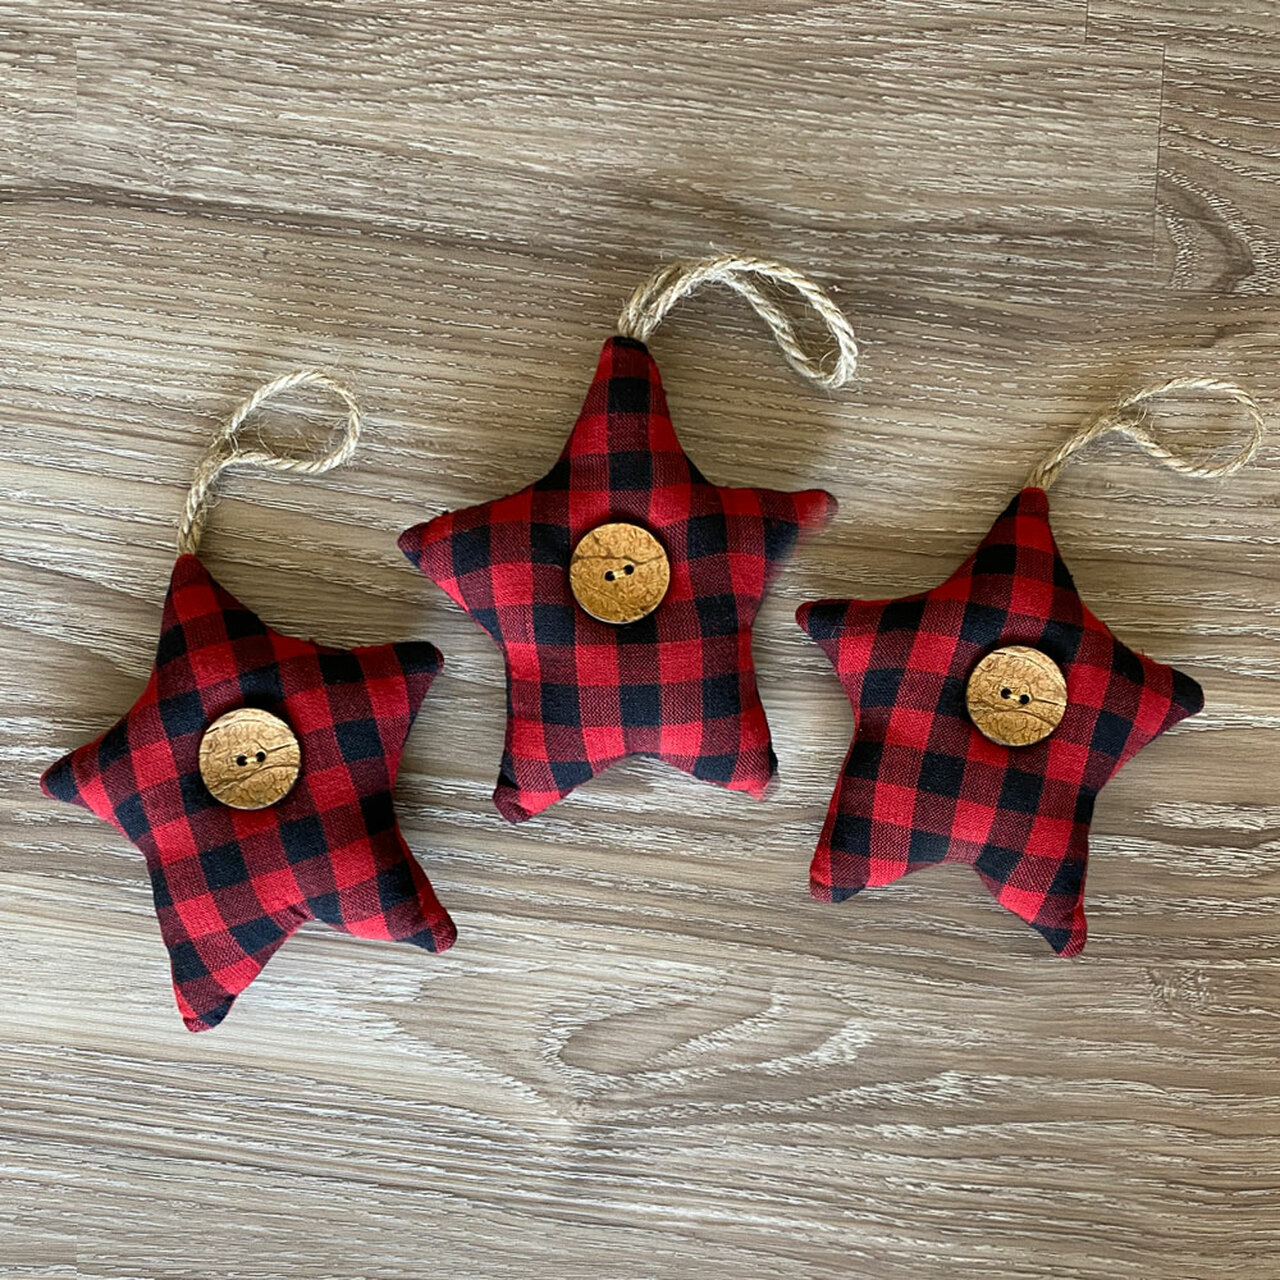 Red & Black Mini Buffalo Plaid Homespun Fabric Star Christmas Ornaments - Set of 3